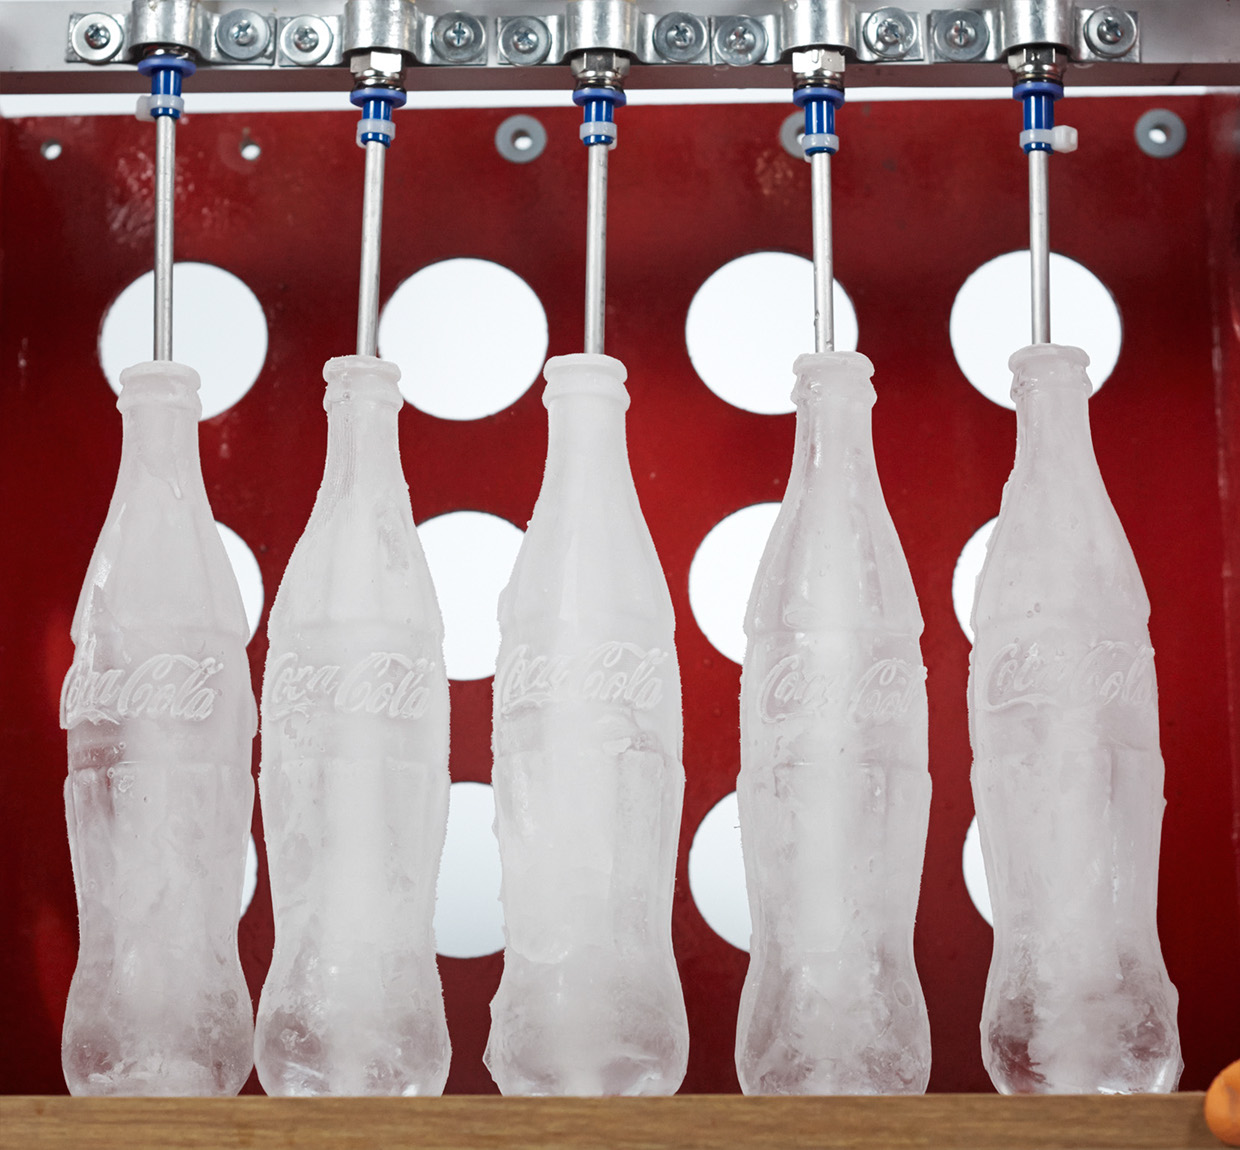 dans-ta-pub-ICE-BOTTLE-COCA-COLA-13